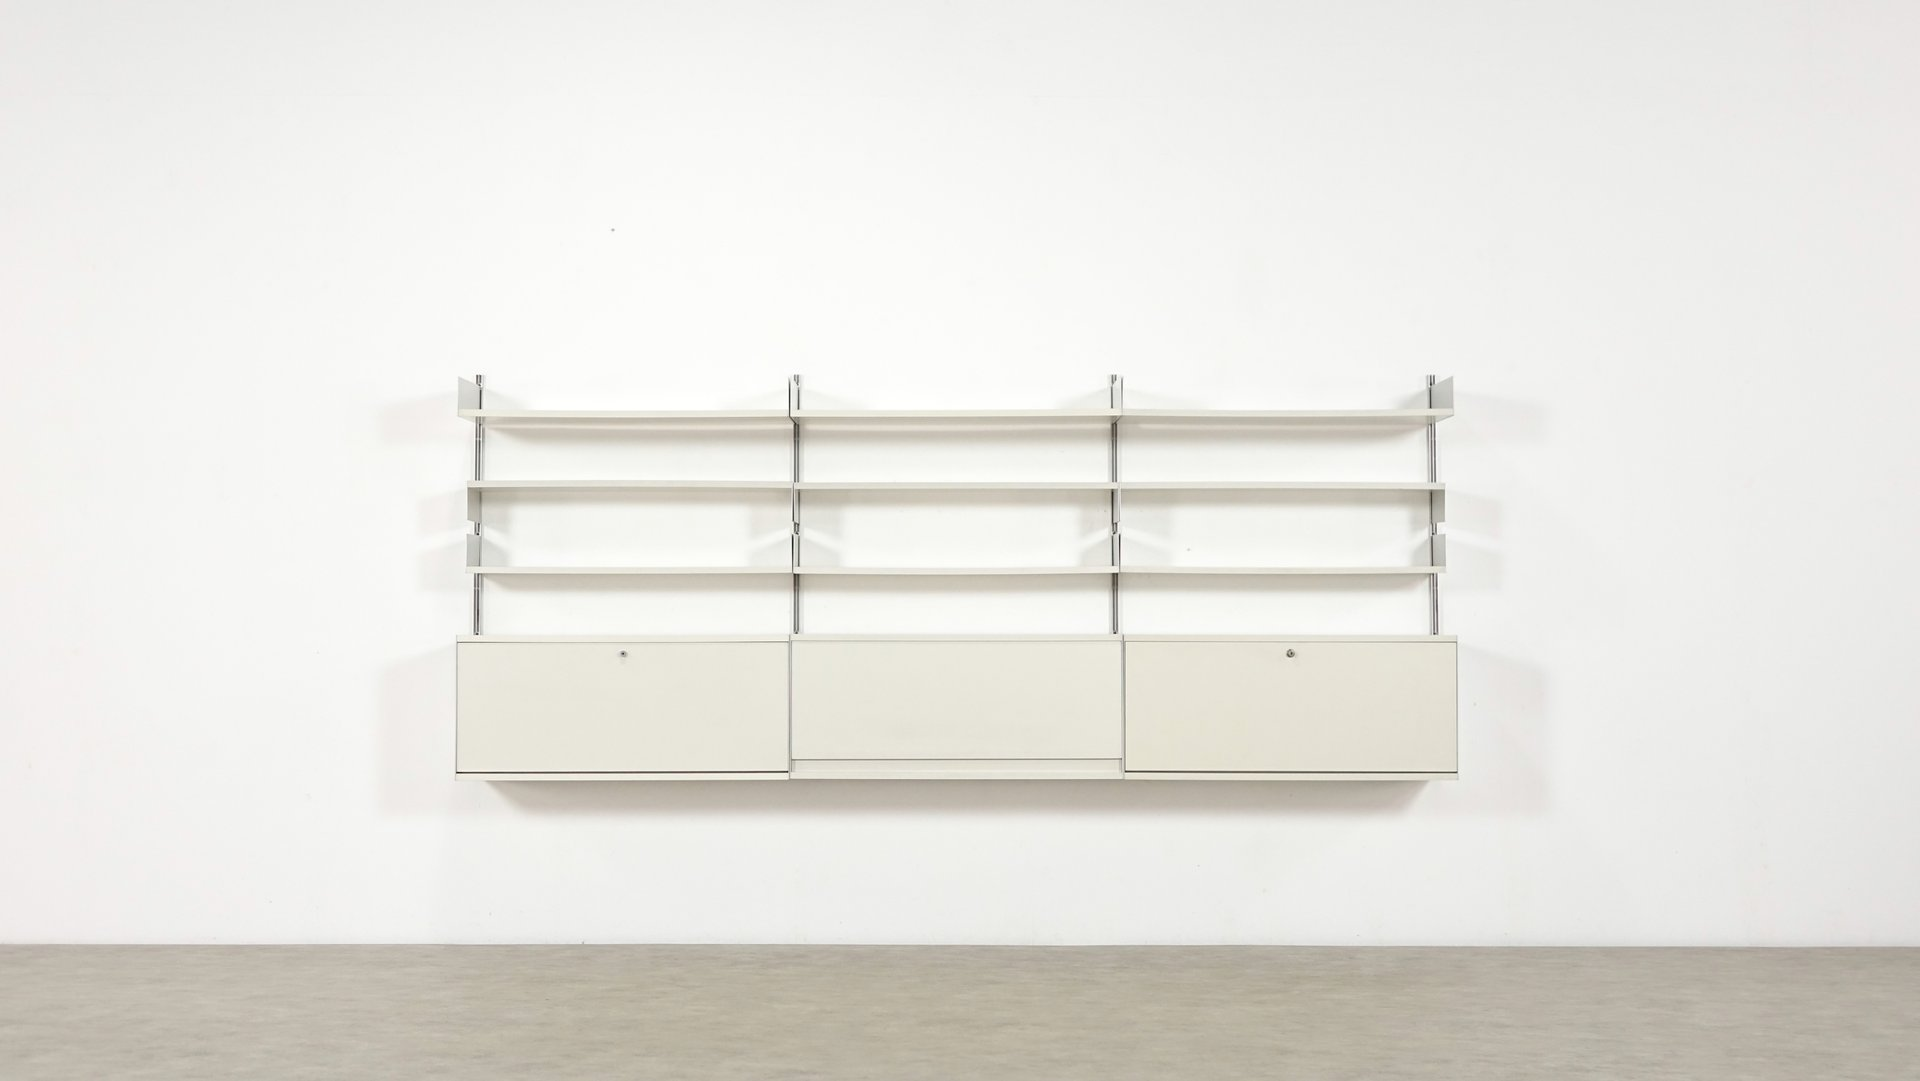 vintage 606 regal system von dieter rams f r vitsoe bei pamono kaufen. Black Bedroom Furniture Sets. Home Design Ideas